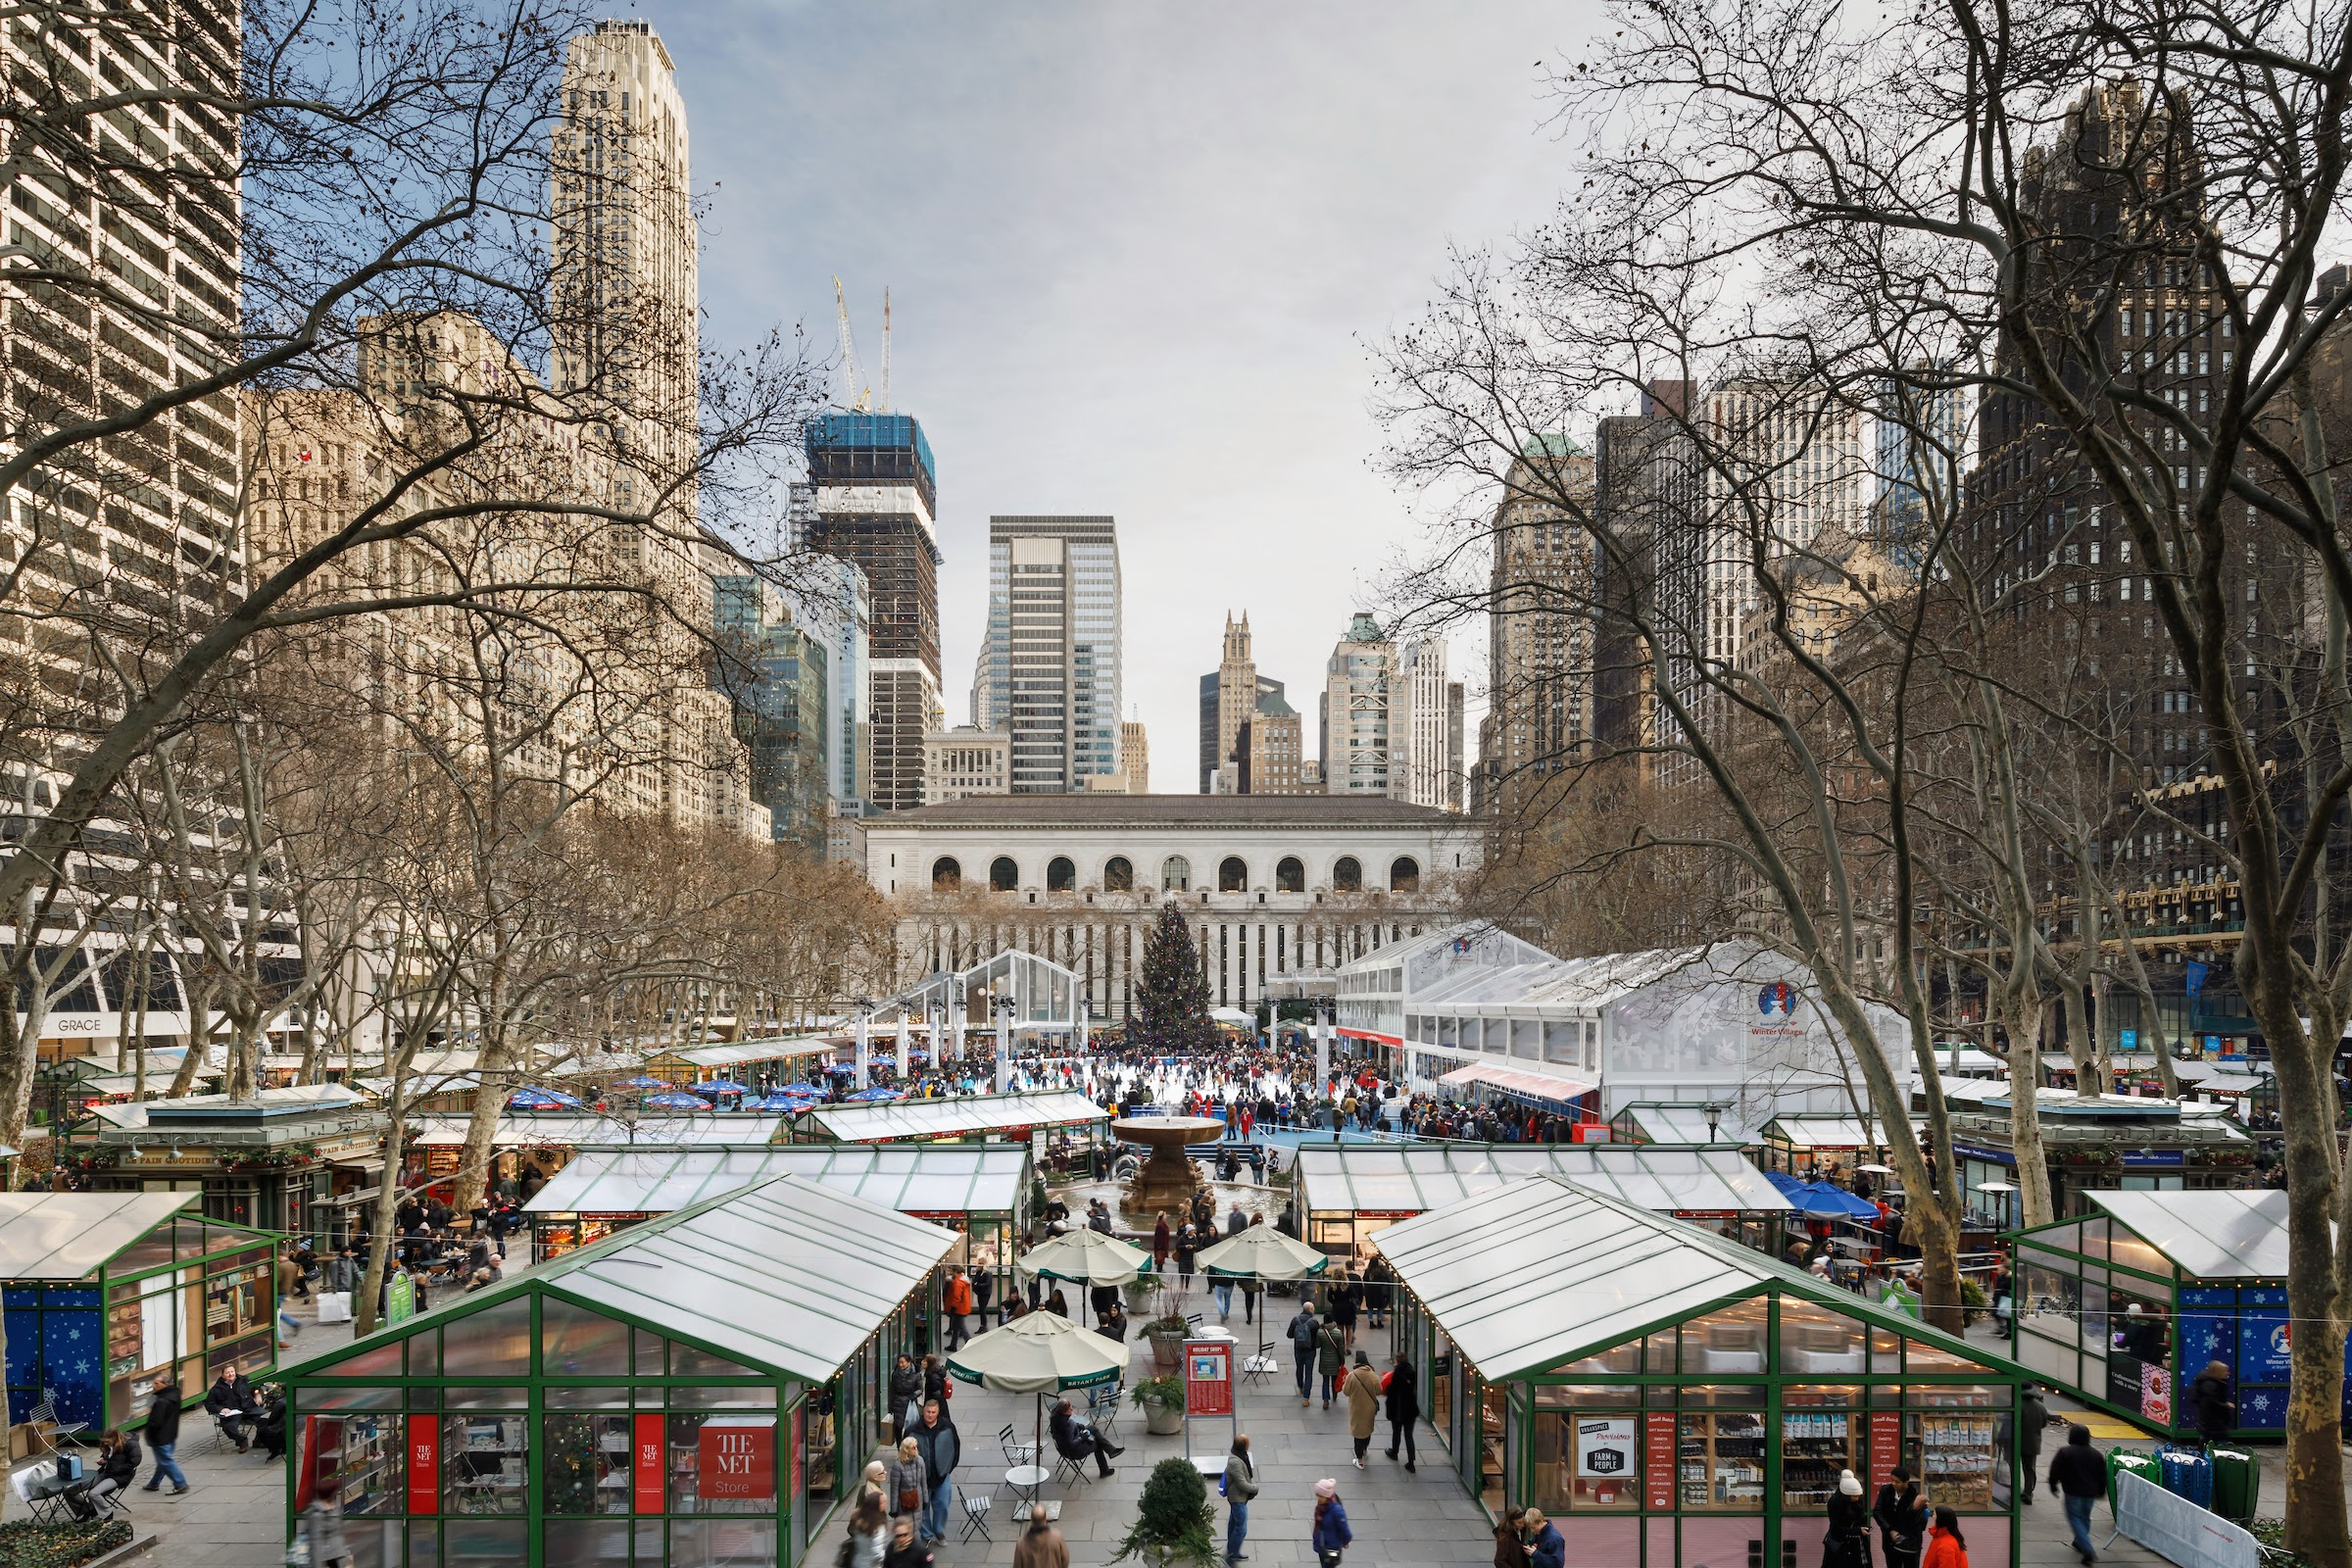 aerial view of Bank of America Winter Village in Bryant Park